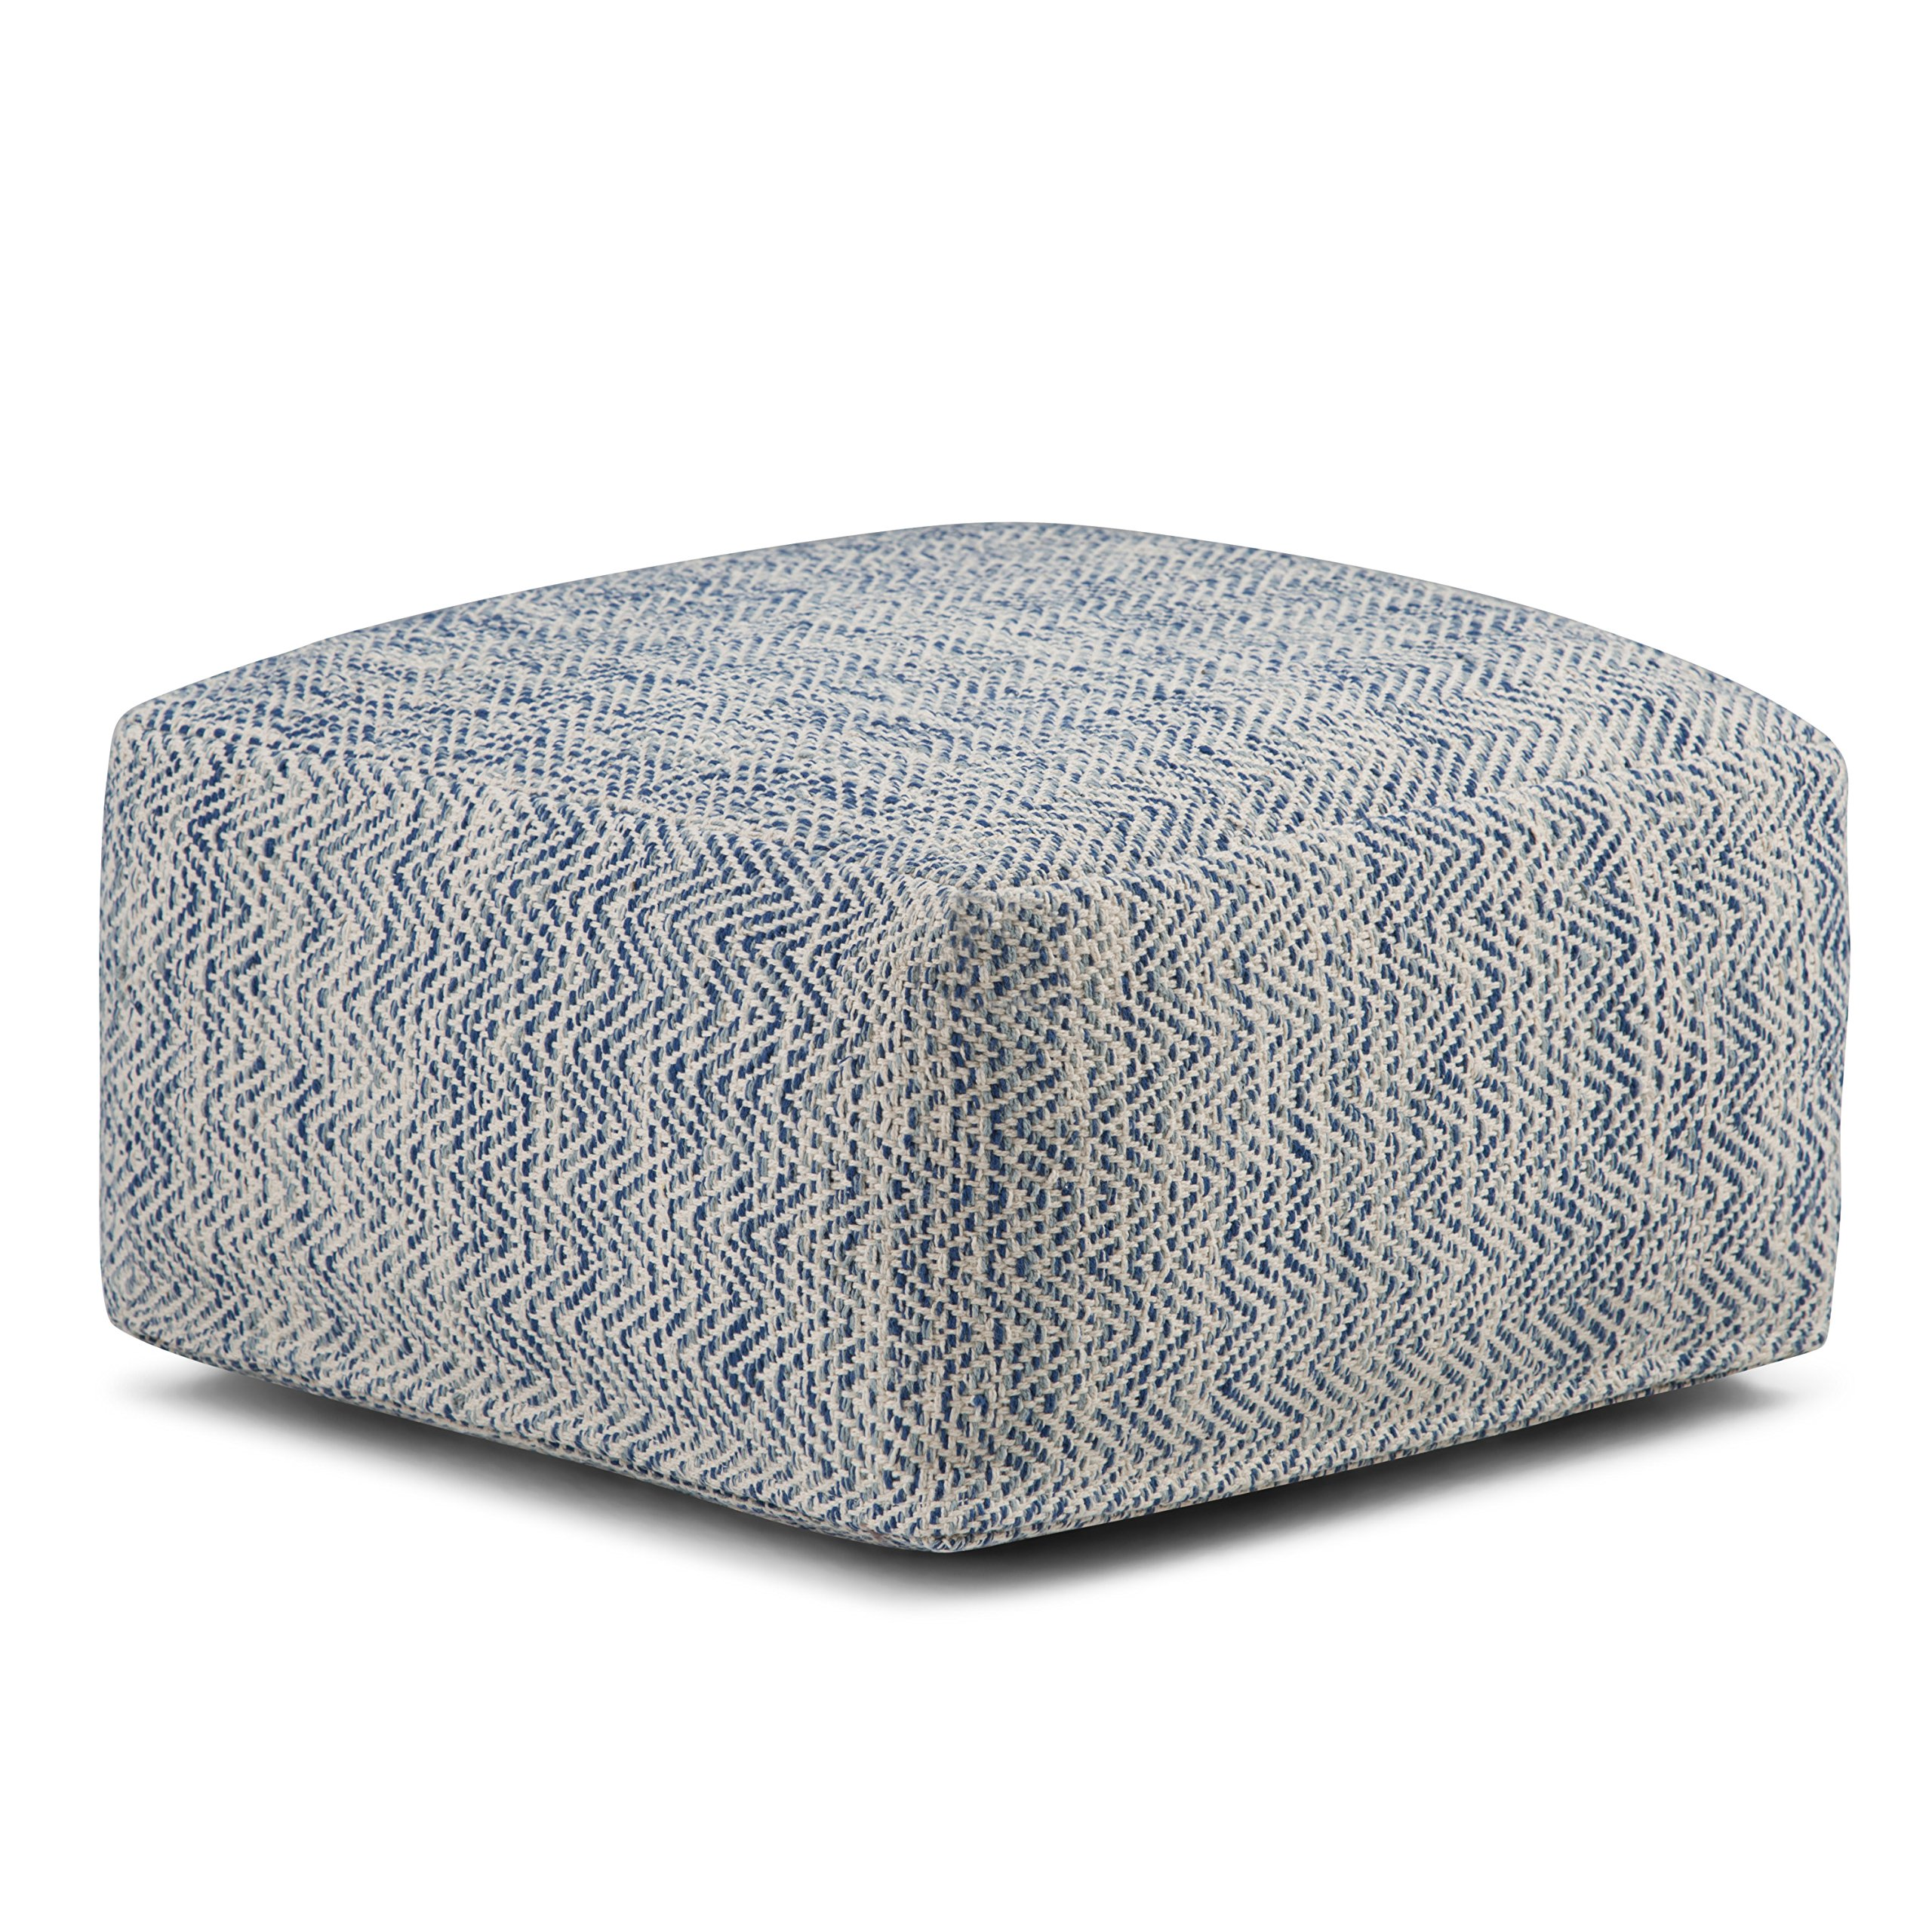 Simpli Home AXCPF-11 Nate Transitional Square Pouf in Patterned Denim Melange Cotton, Fully Assembled by Simpli Home